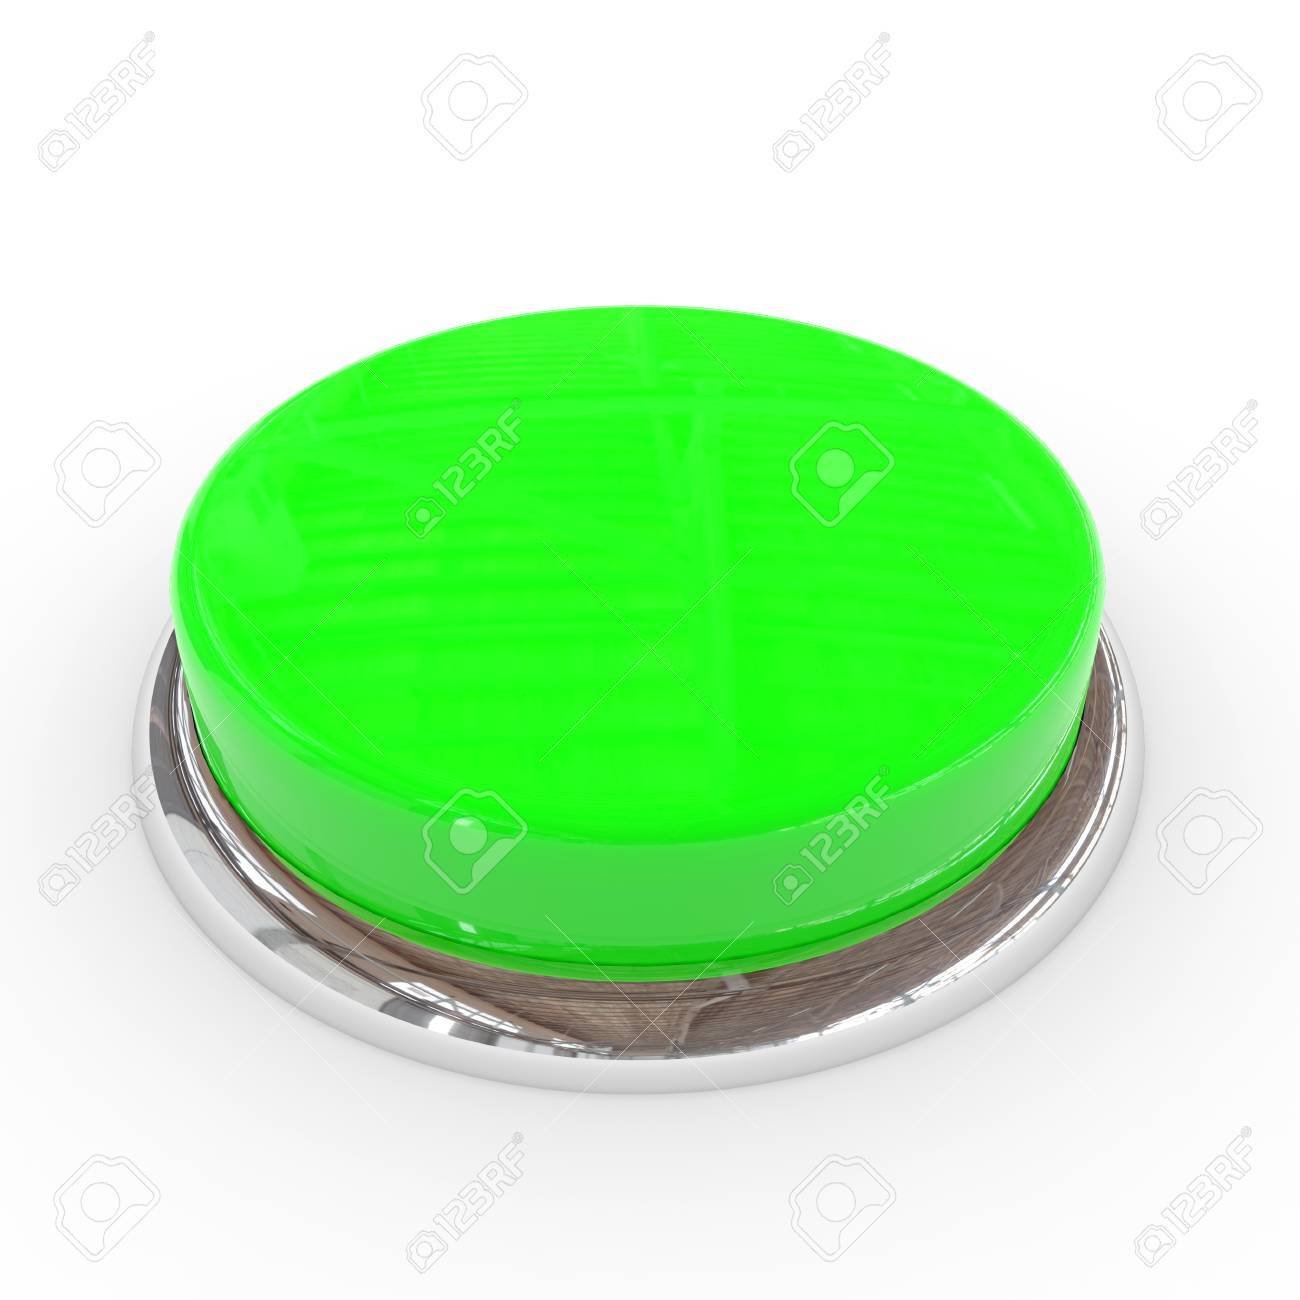 Green round blank 3d button with chrome ring. Computer generated image. Stock Photo - 11818160